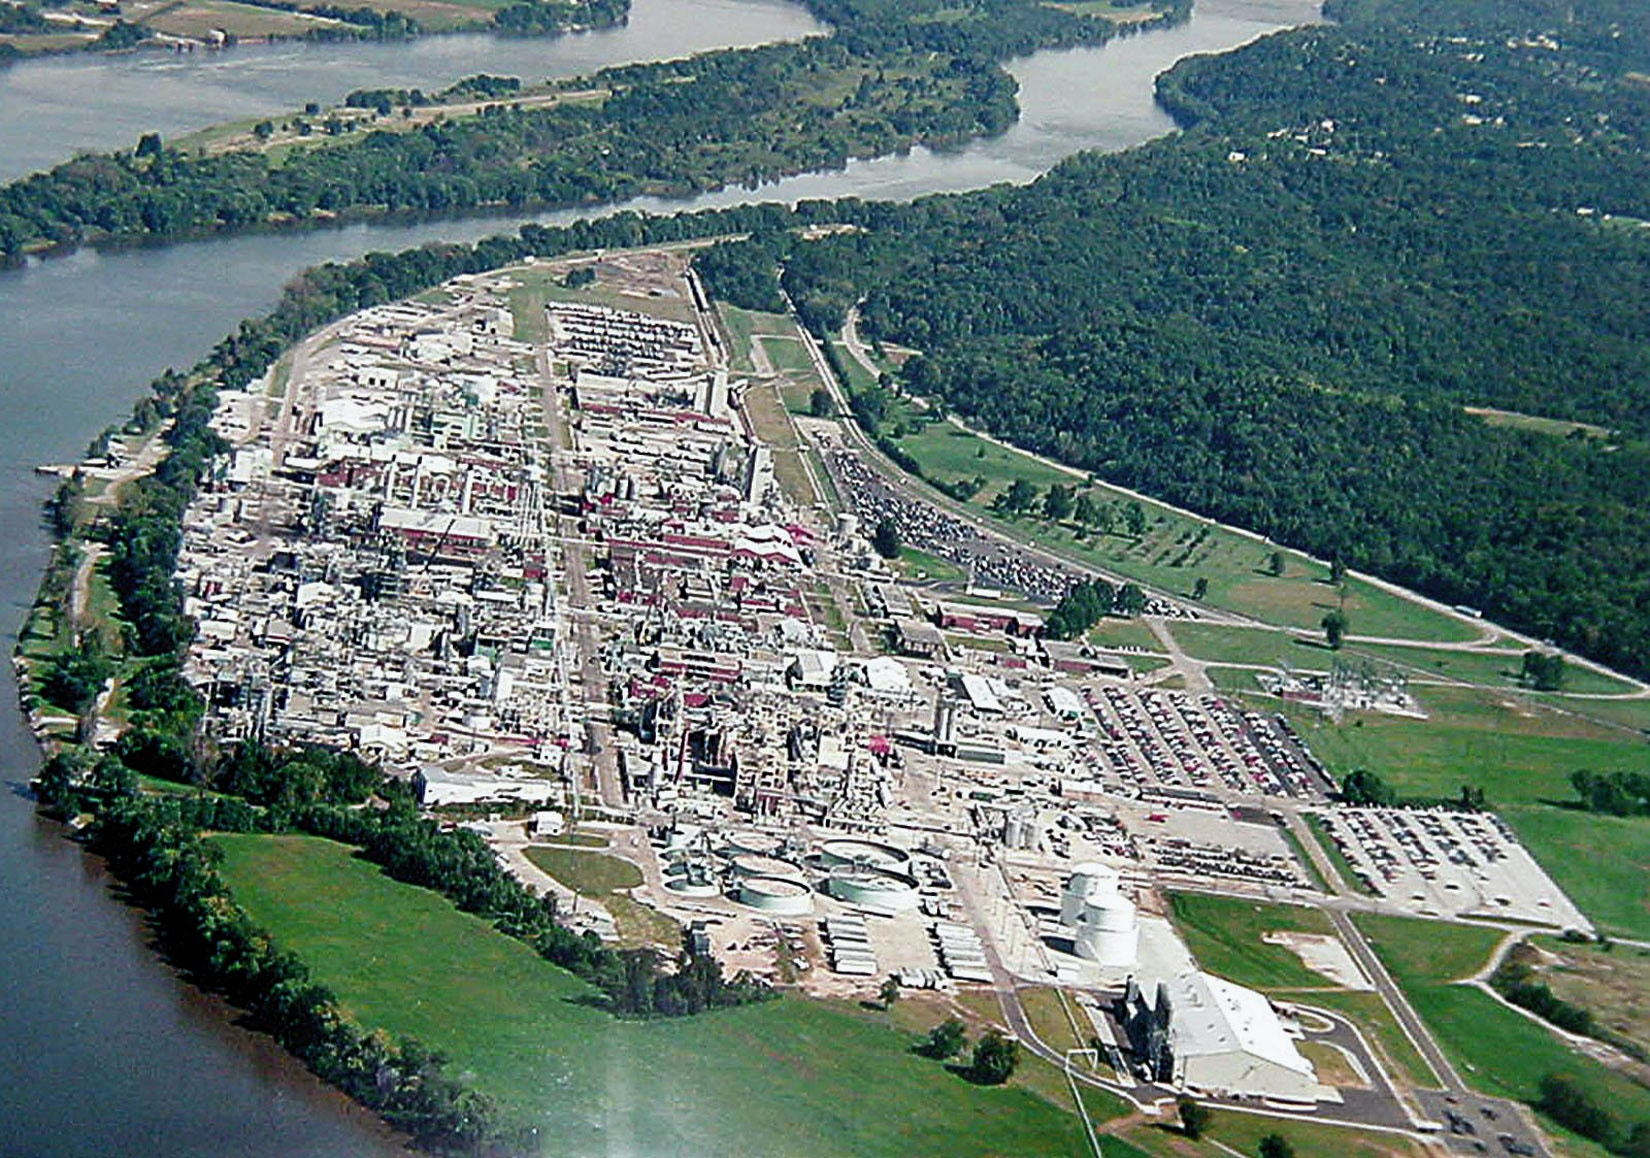 **FILE** DuPont Washington Works plant along Ohio River in Parkersburg, W. Va. is shown in this undated file photo. Up to 80,000 Ohio and West Virginia residents could be tested over the next year to determine if their health has been affected by drinking water containing a chemical used to make Teflon. DuPont Co. agreed in February to pay for the screenings to settle a class action lawsuit. (AP Photo/The Marietta Times)